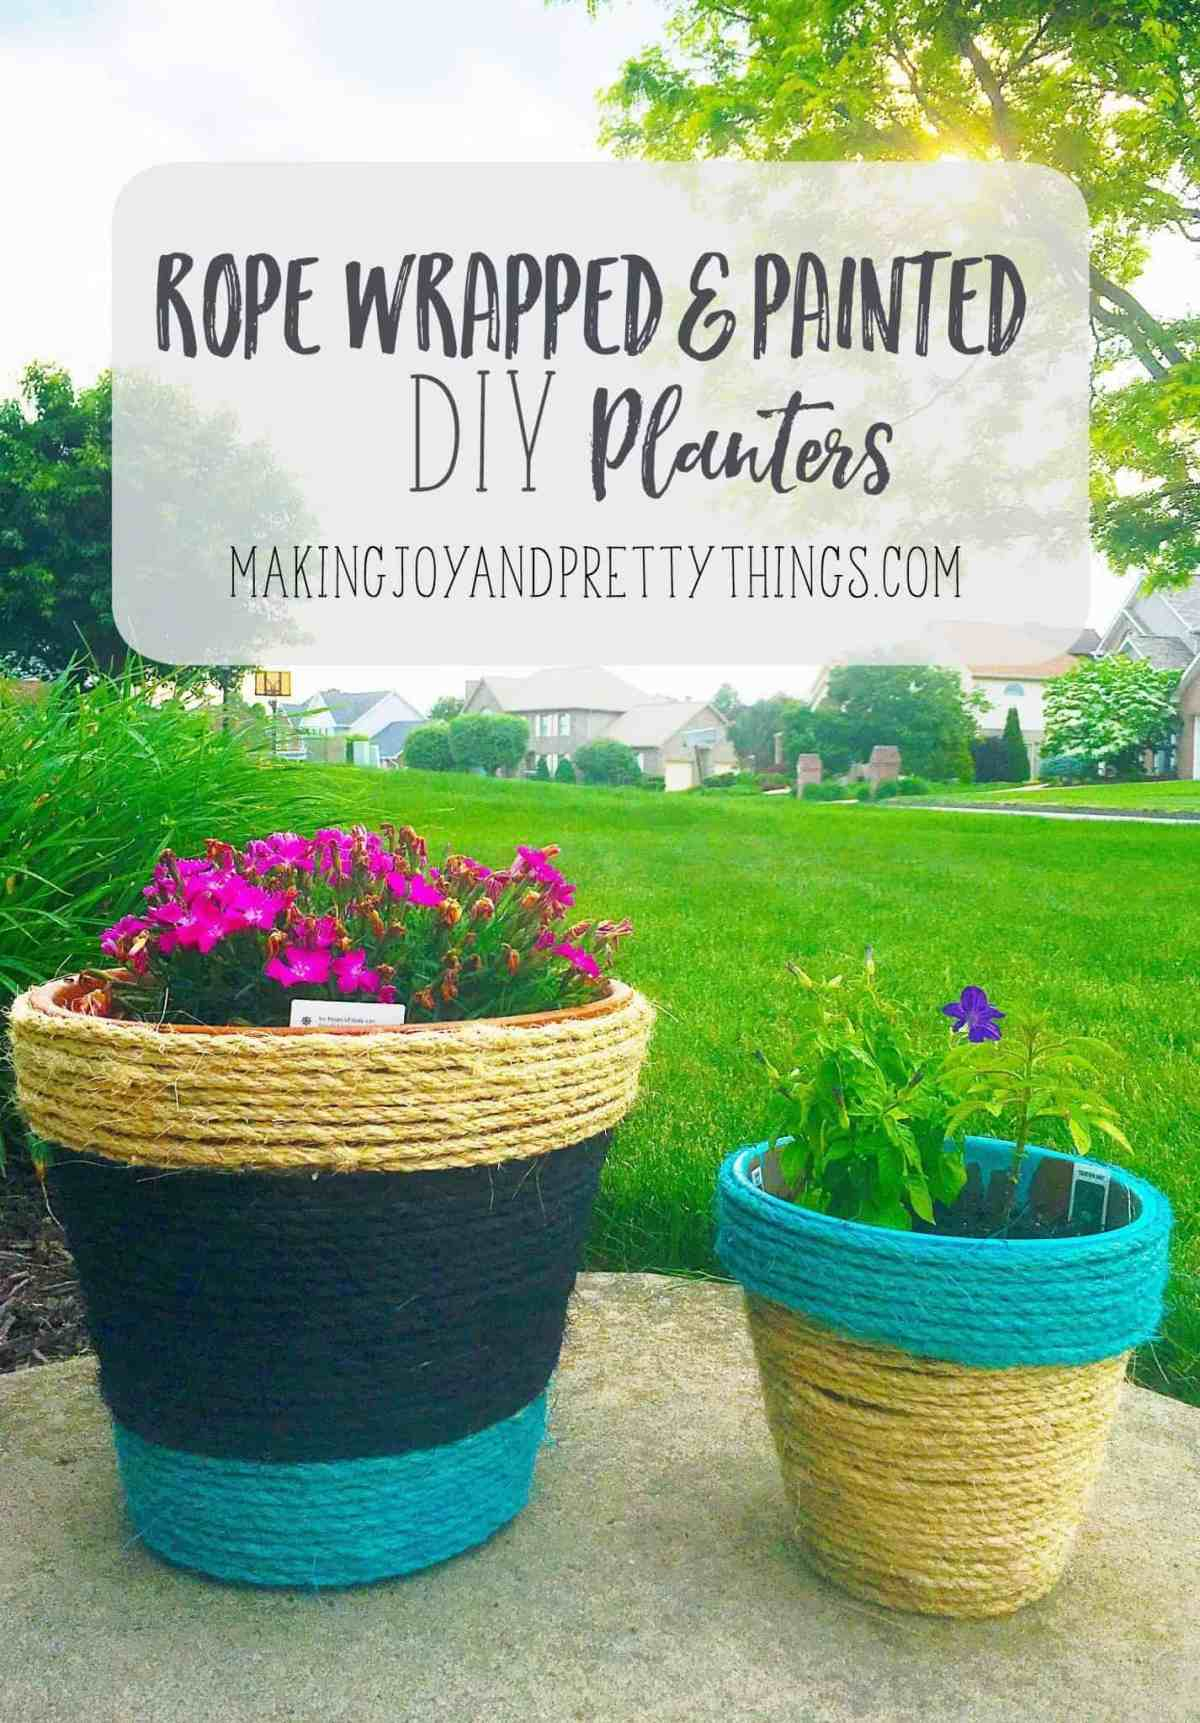 Rope wrapped and painted DIY planters. Perfect easy DIY to kick off summer. Can be customized with any color to compliment your garden area. Makes a great DIY gift